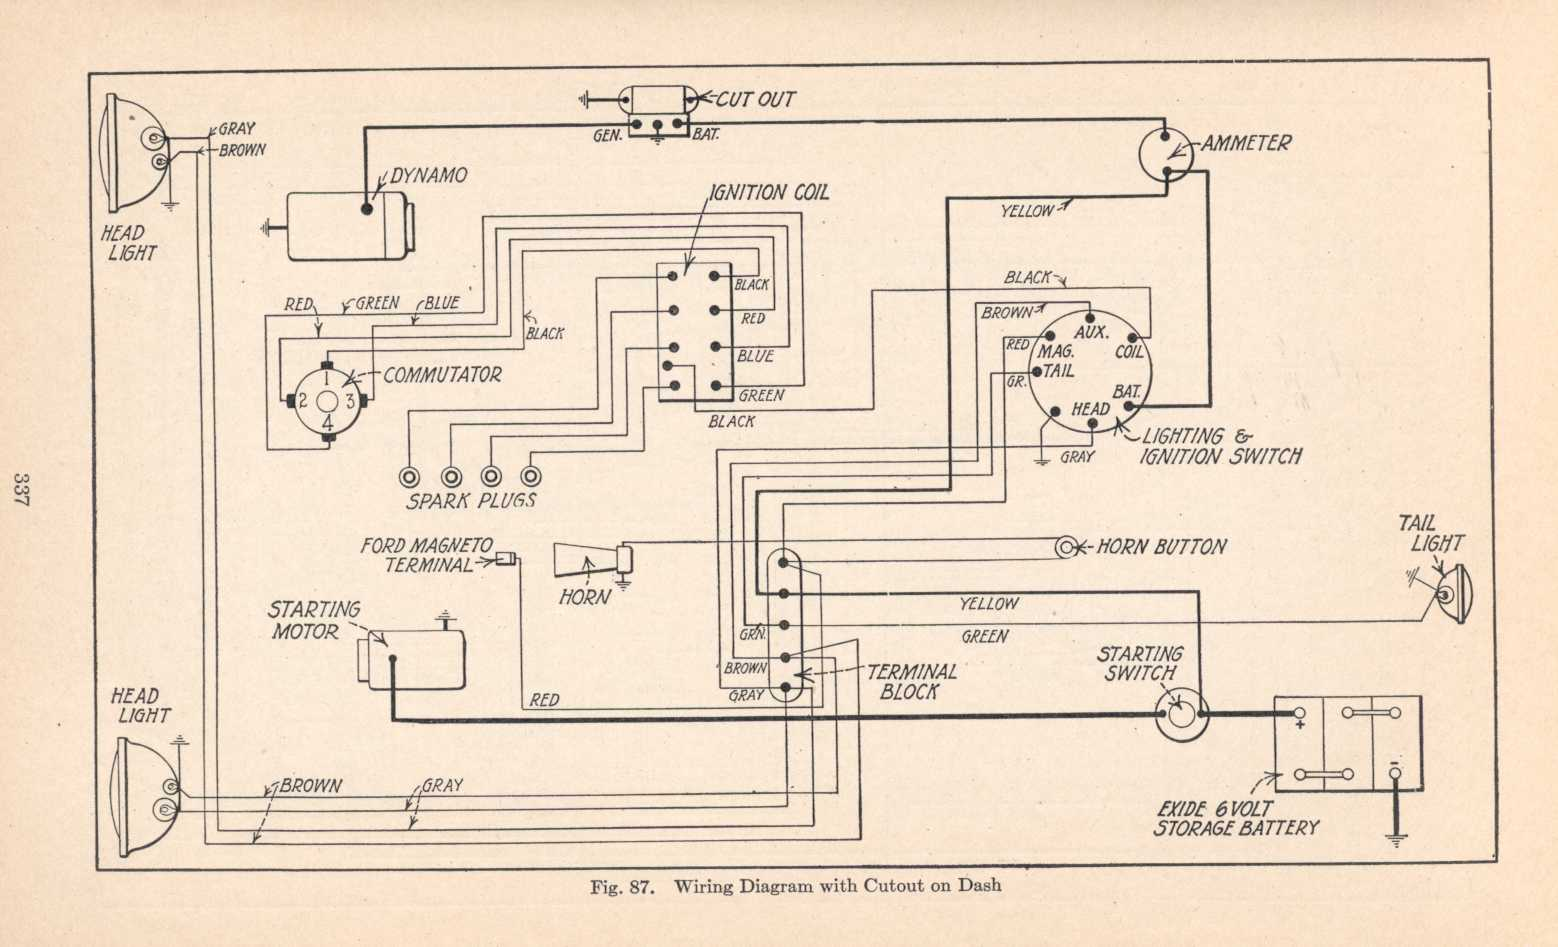 hight resolution of ford model t wiring diagram wiring diagram articlemodel t ford wiring diagram wiring diagram list ford